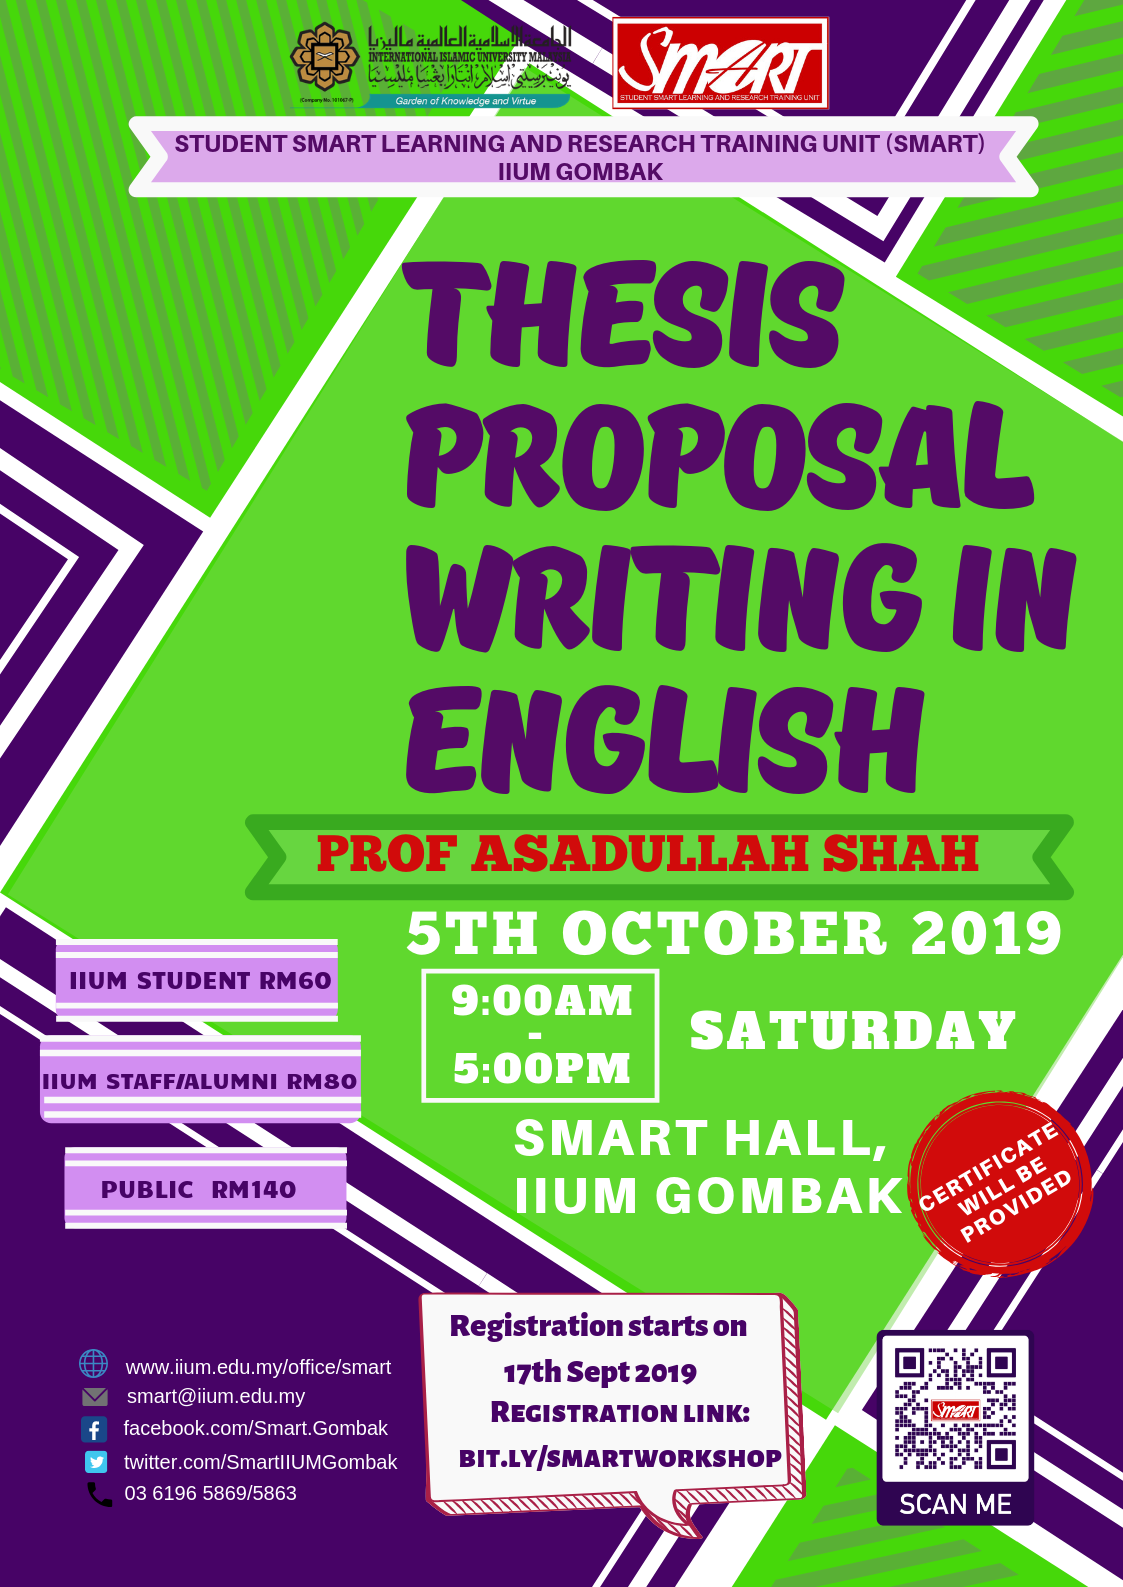 SEM 1, 19/20 - WORKSHOP - THESIS PROPOSAL WRITING IN ENGLISH